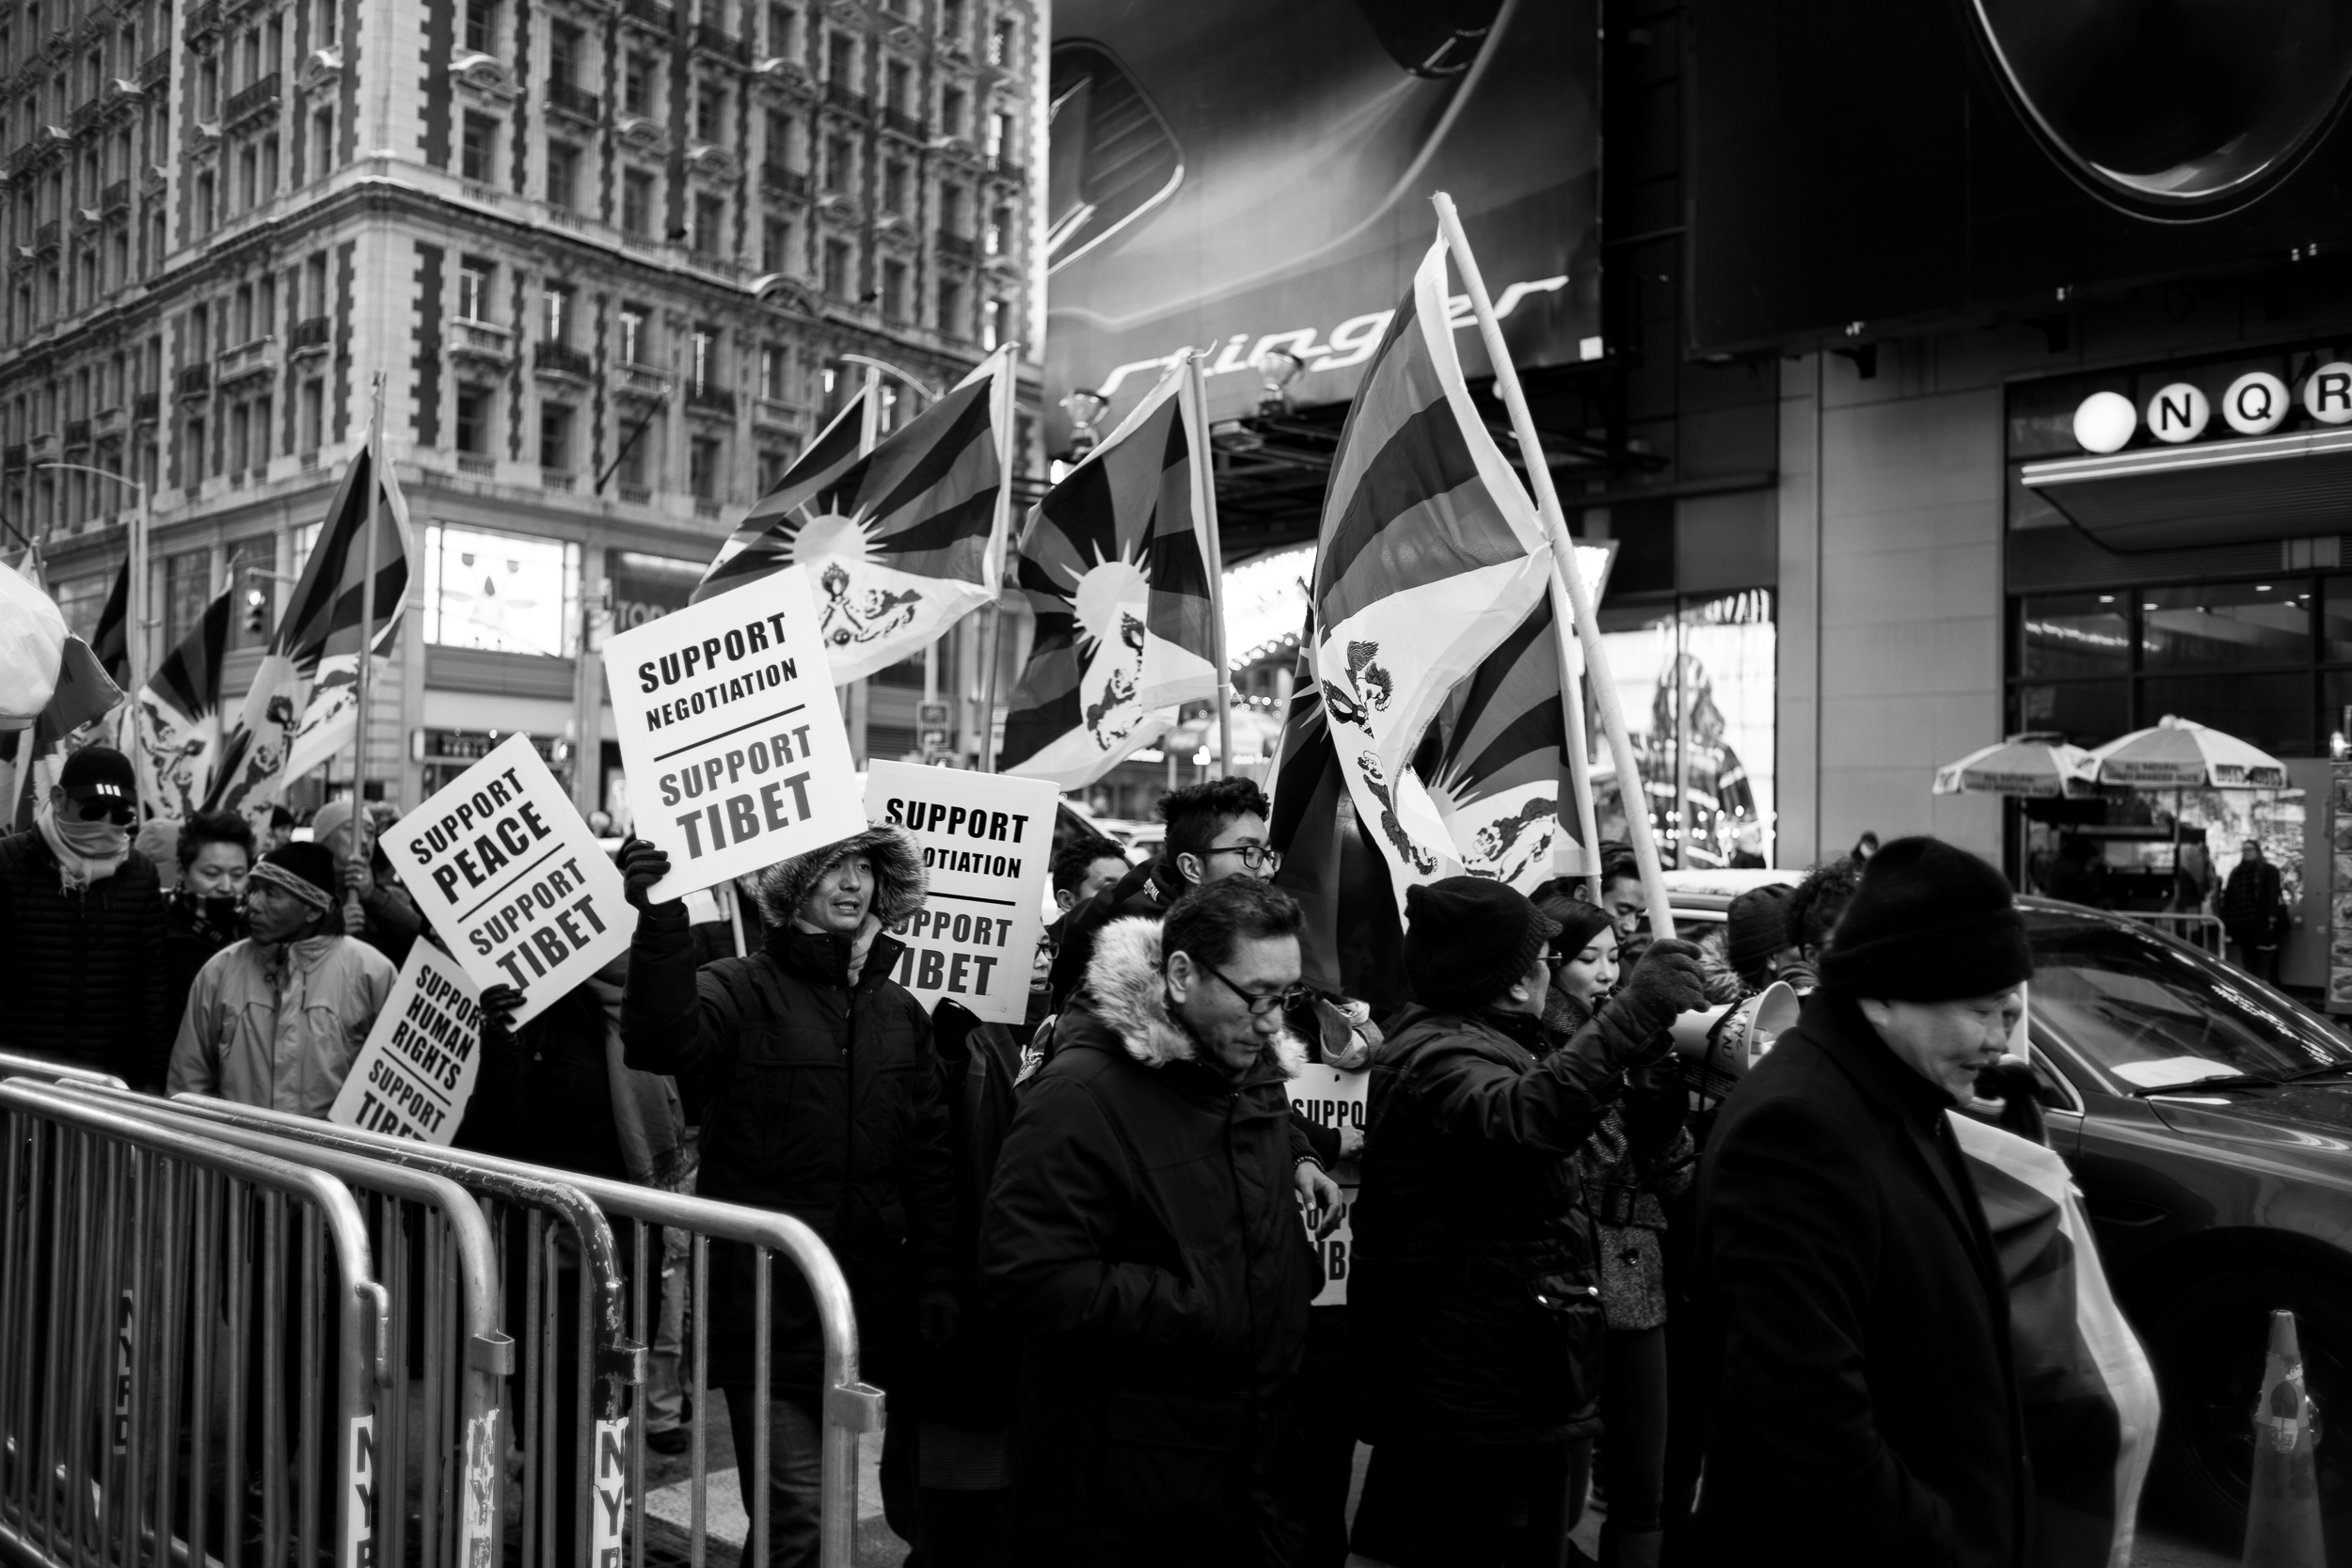 The pro-Tibet rally walked through Times Square demanding peace.  Leica M10 with 35mm Summicron f/2.